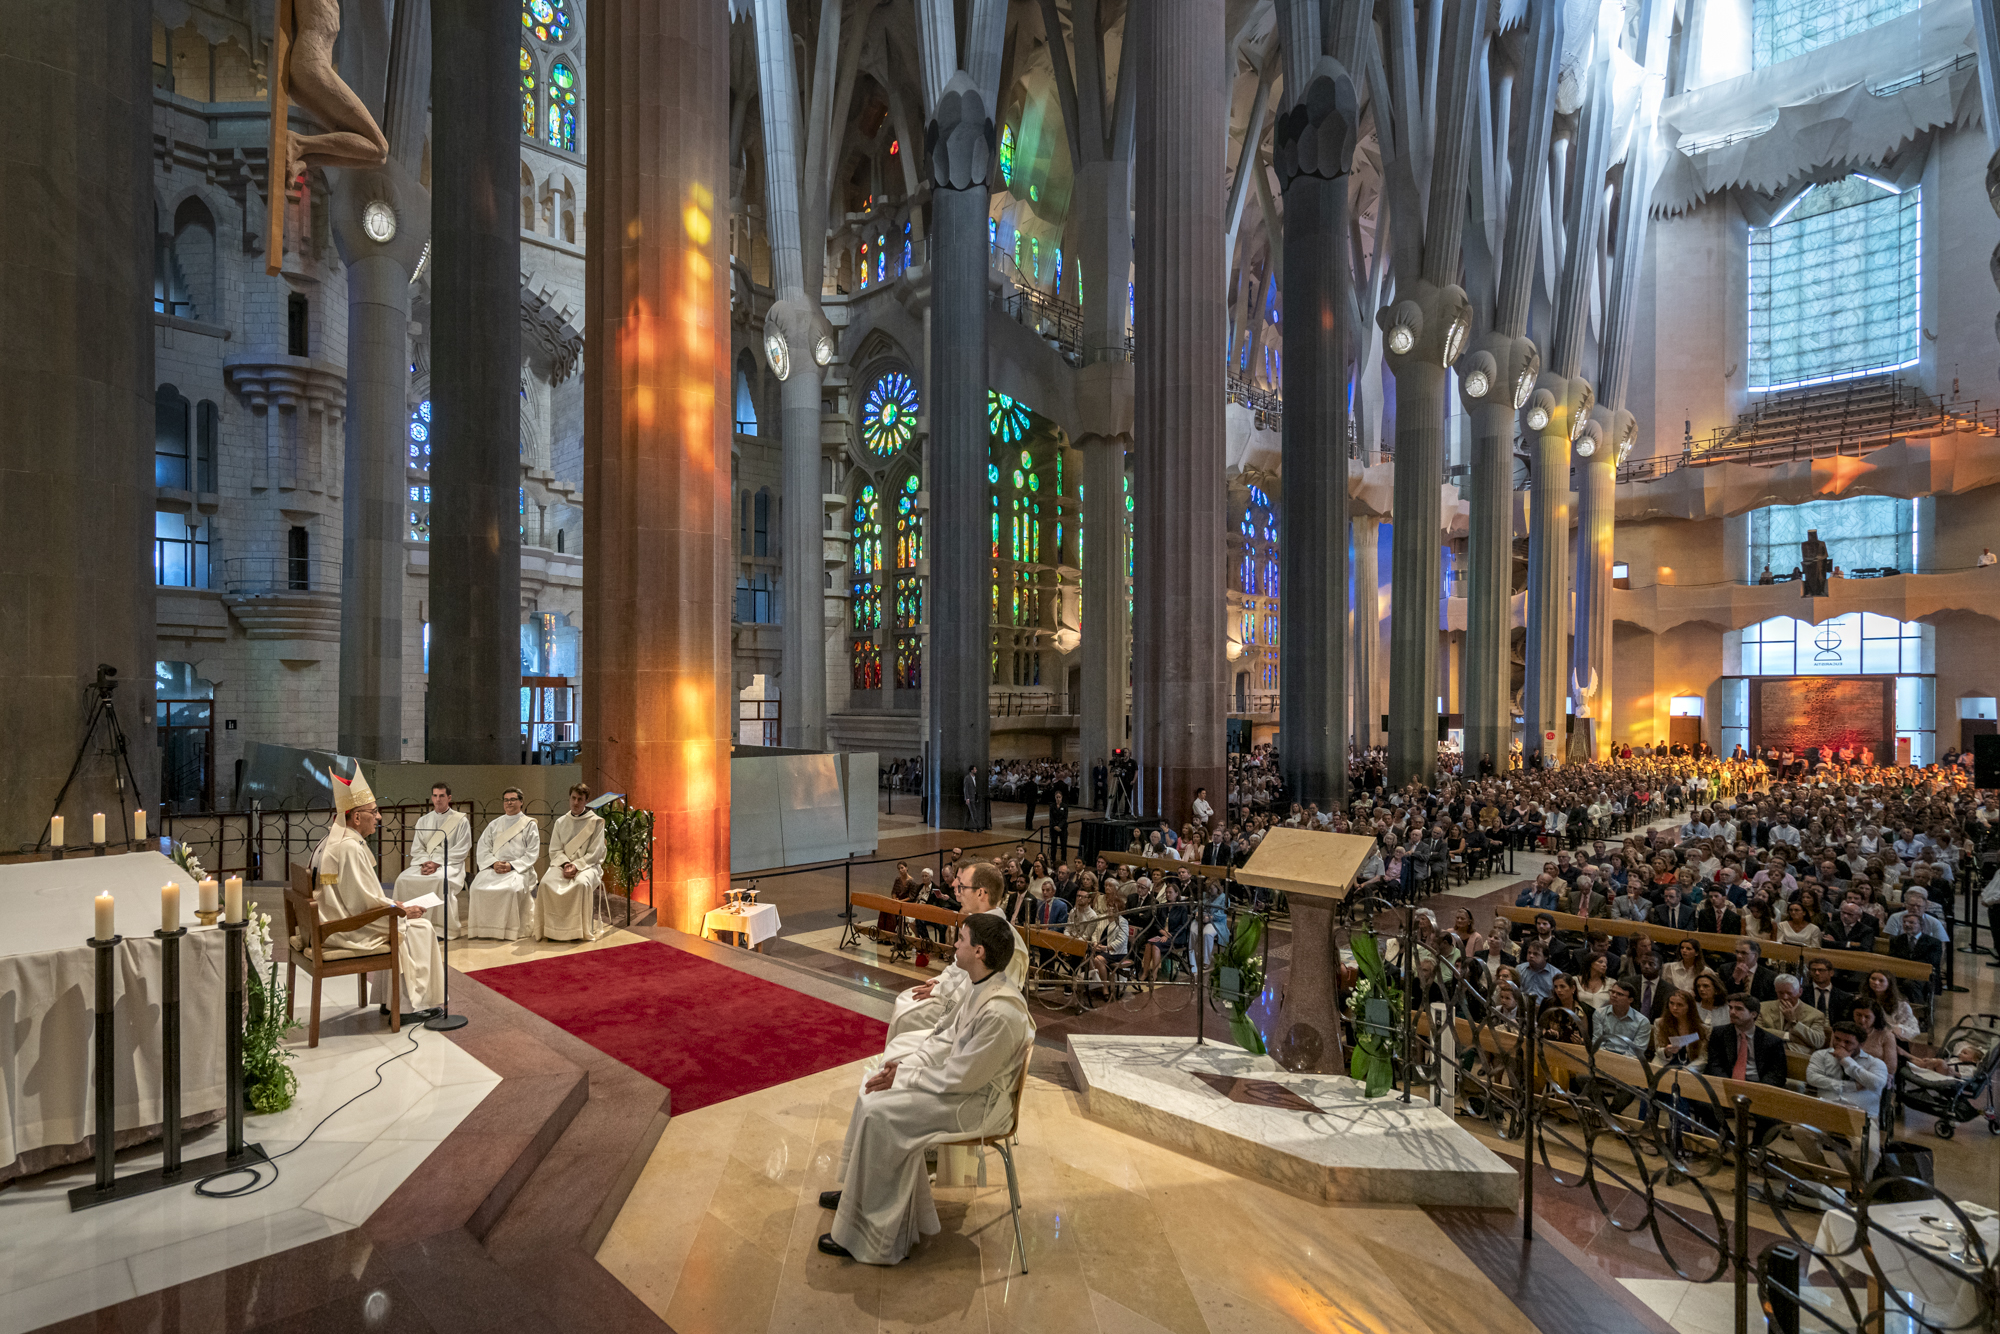 New mass of priestly ordinations at the Sagrada Família